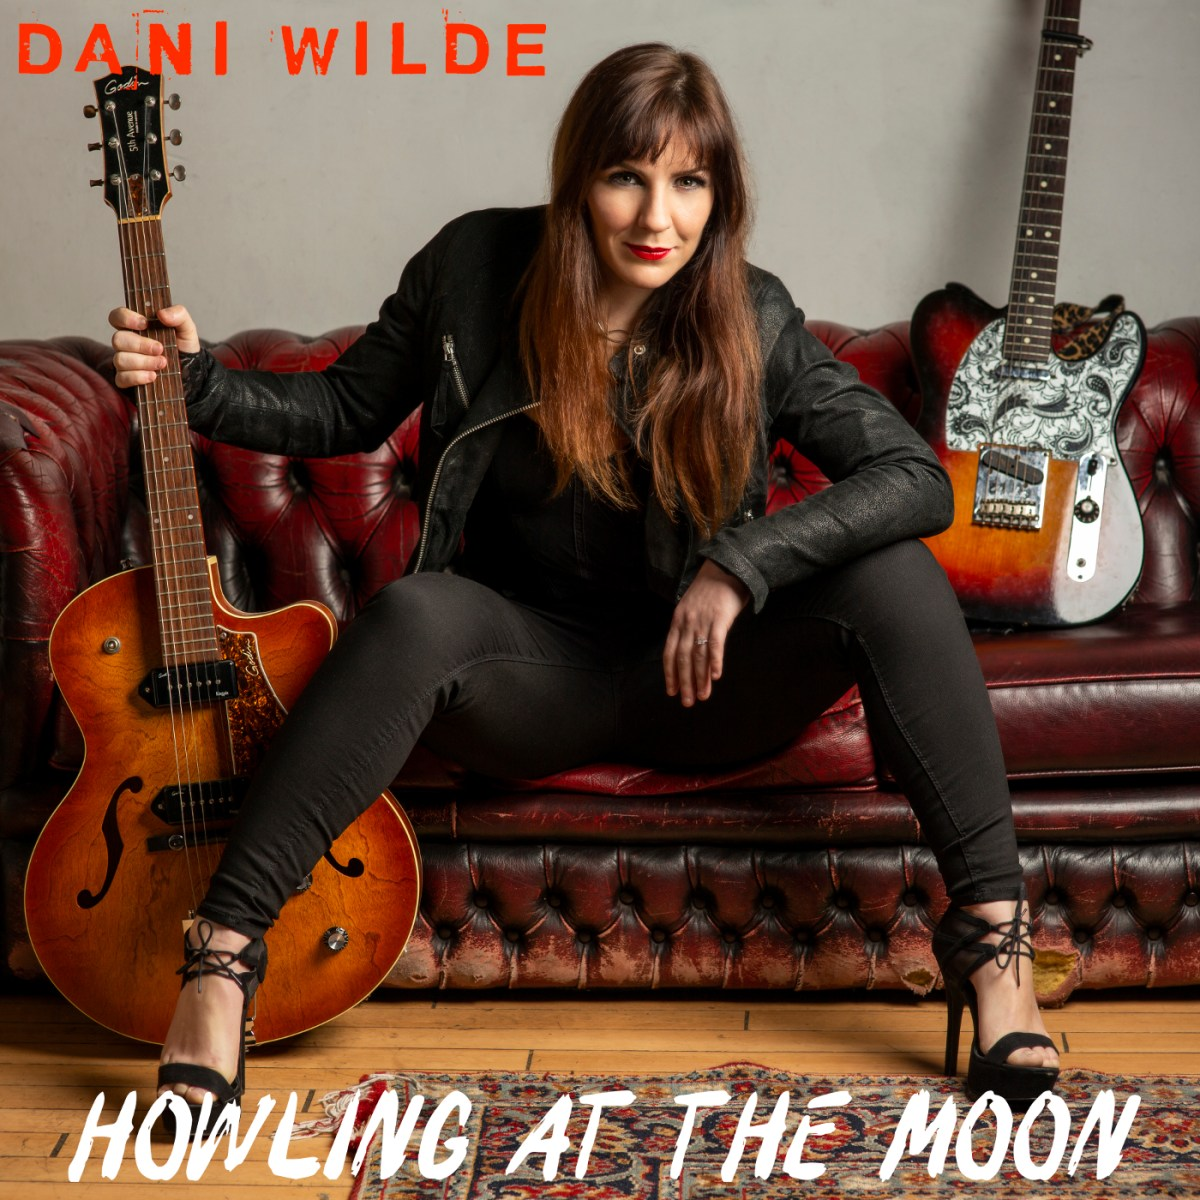 dani wilde howling at the moon